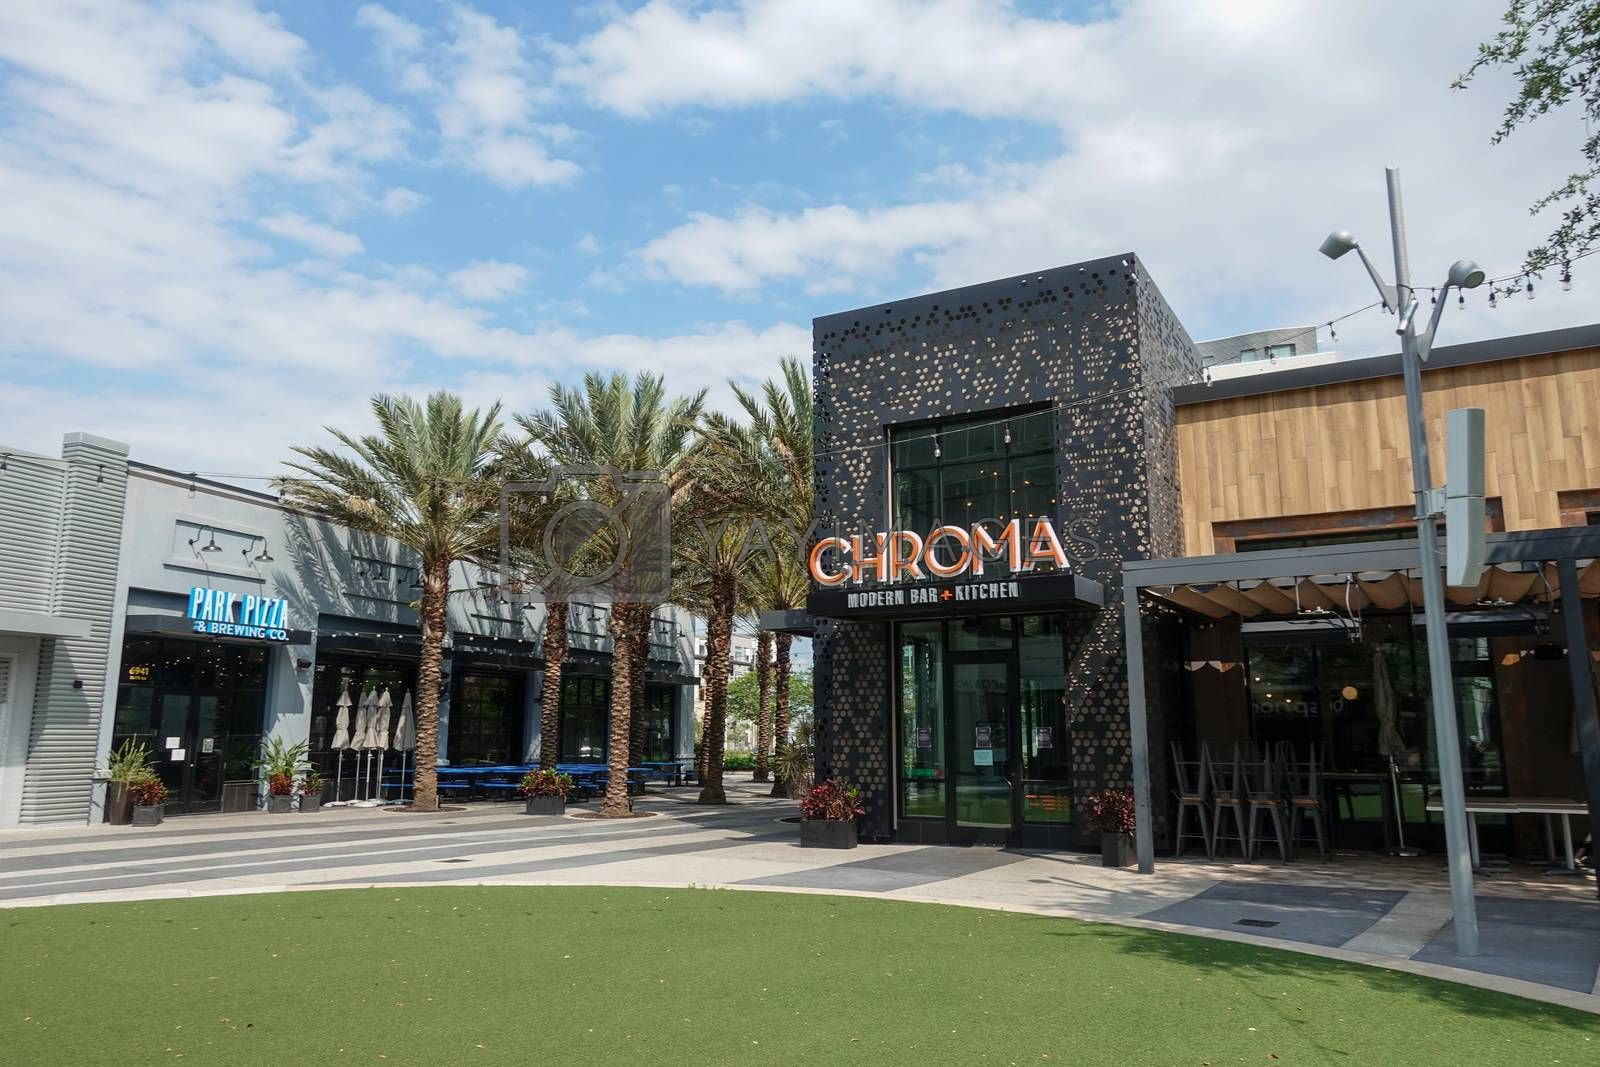 Orlando, FL/USA-4/11/20: The exterior of the small plate modern restaurant and bar Chroma in Laureate Park at Lake Nona in Orlando, FL USA.